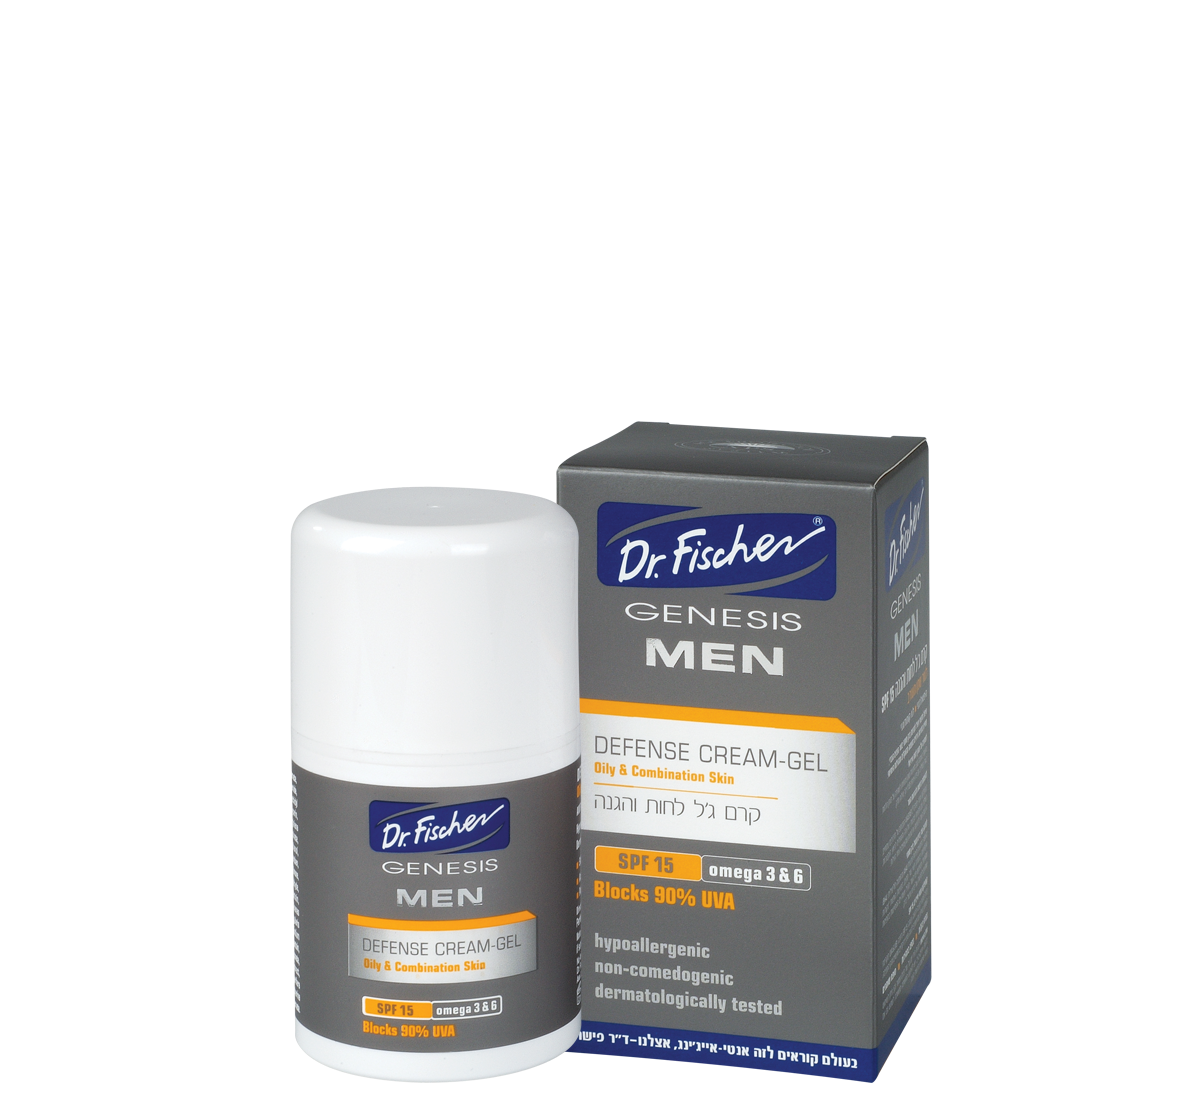 men-defence_cream_gel_1184x1104